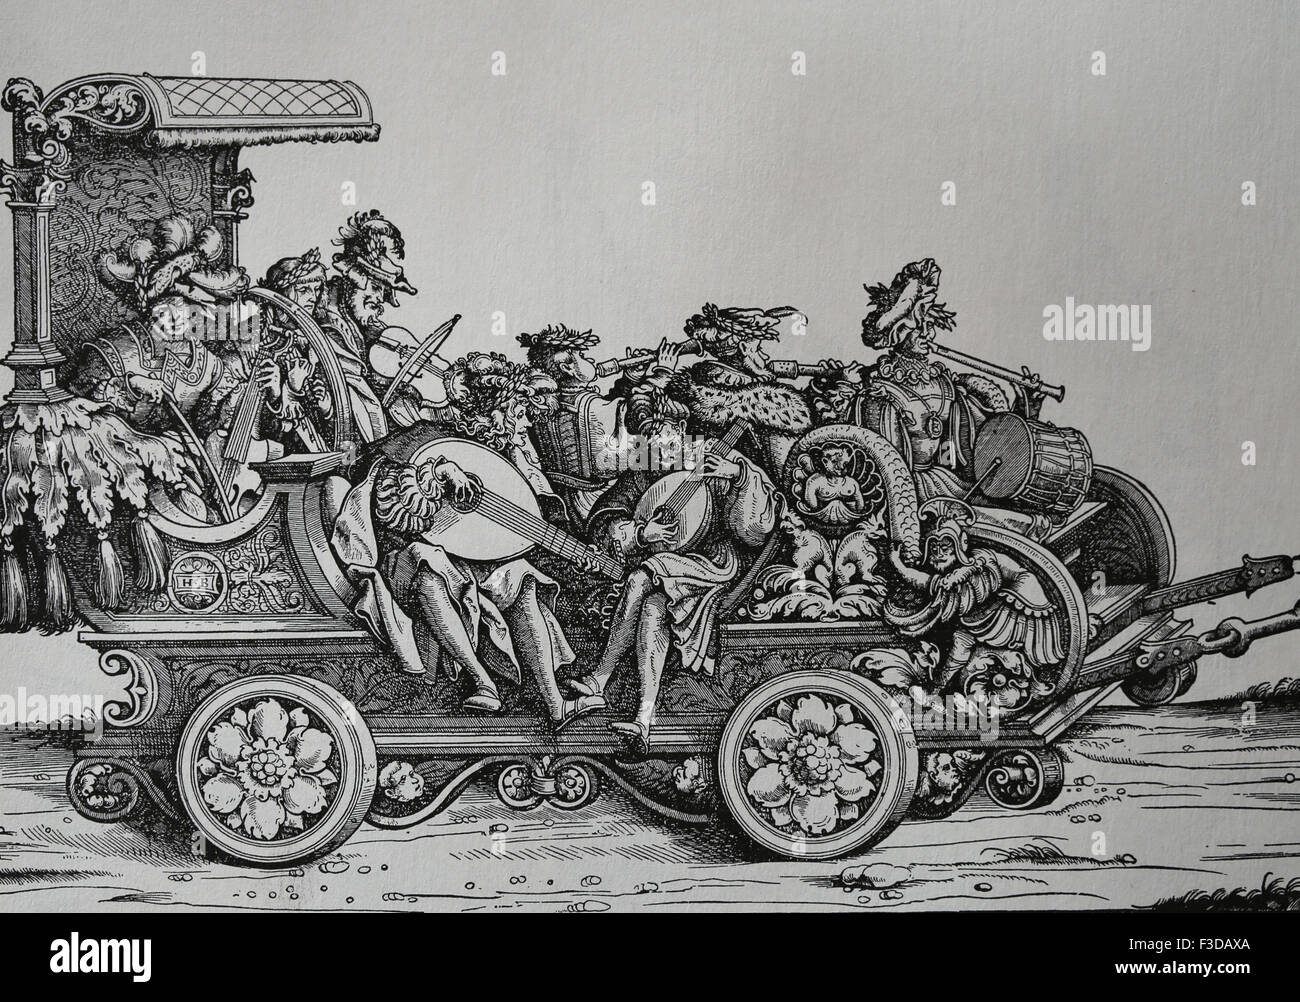 Europe. Italy. Carriage with musicians playing different musical instruments. Engraving. - Stock Image